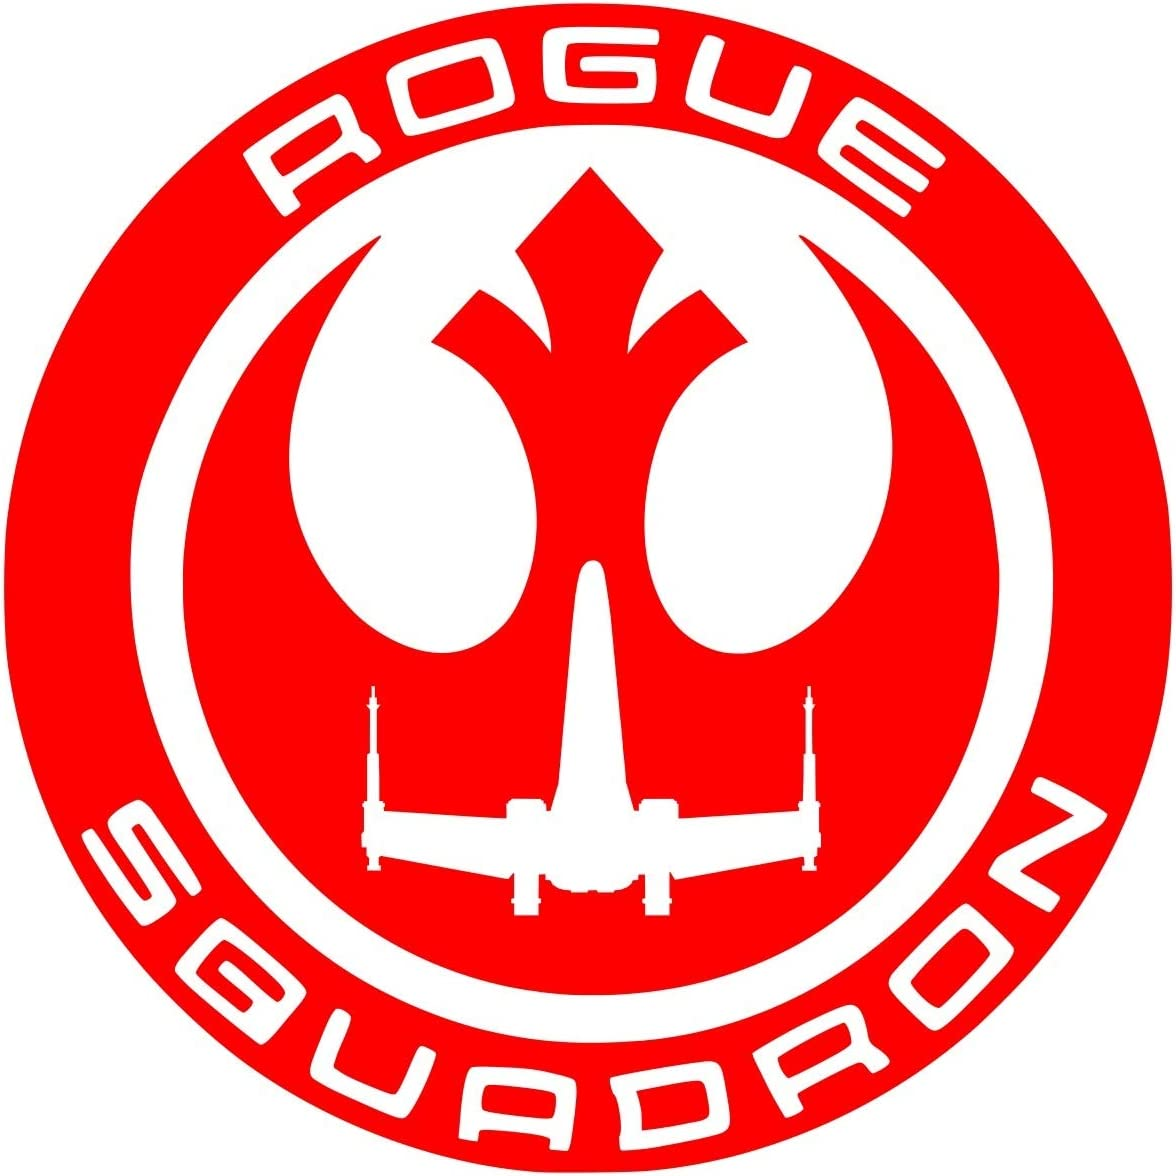 UR Impressions Red Rogue Squadron Decal Vinyl Sticker Graphics for Cars Trucks SUV Vans Walls Windows Laptop|RED|5.5 Inch|URI344